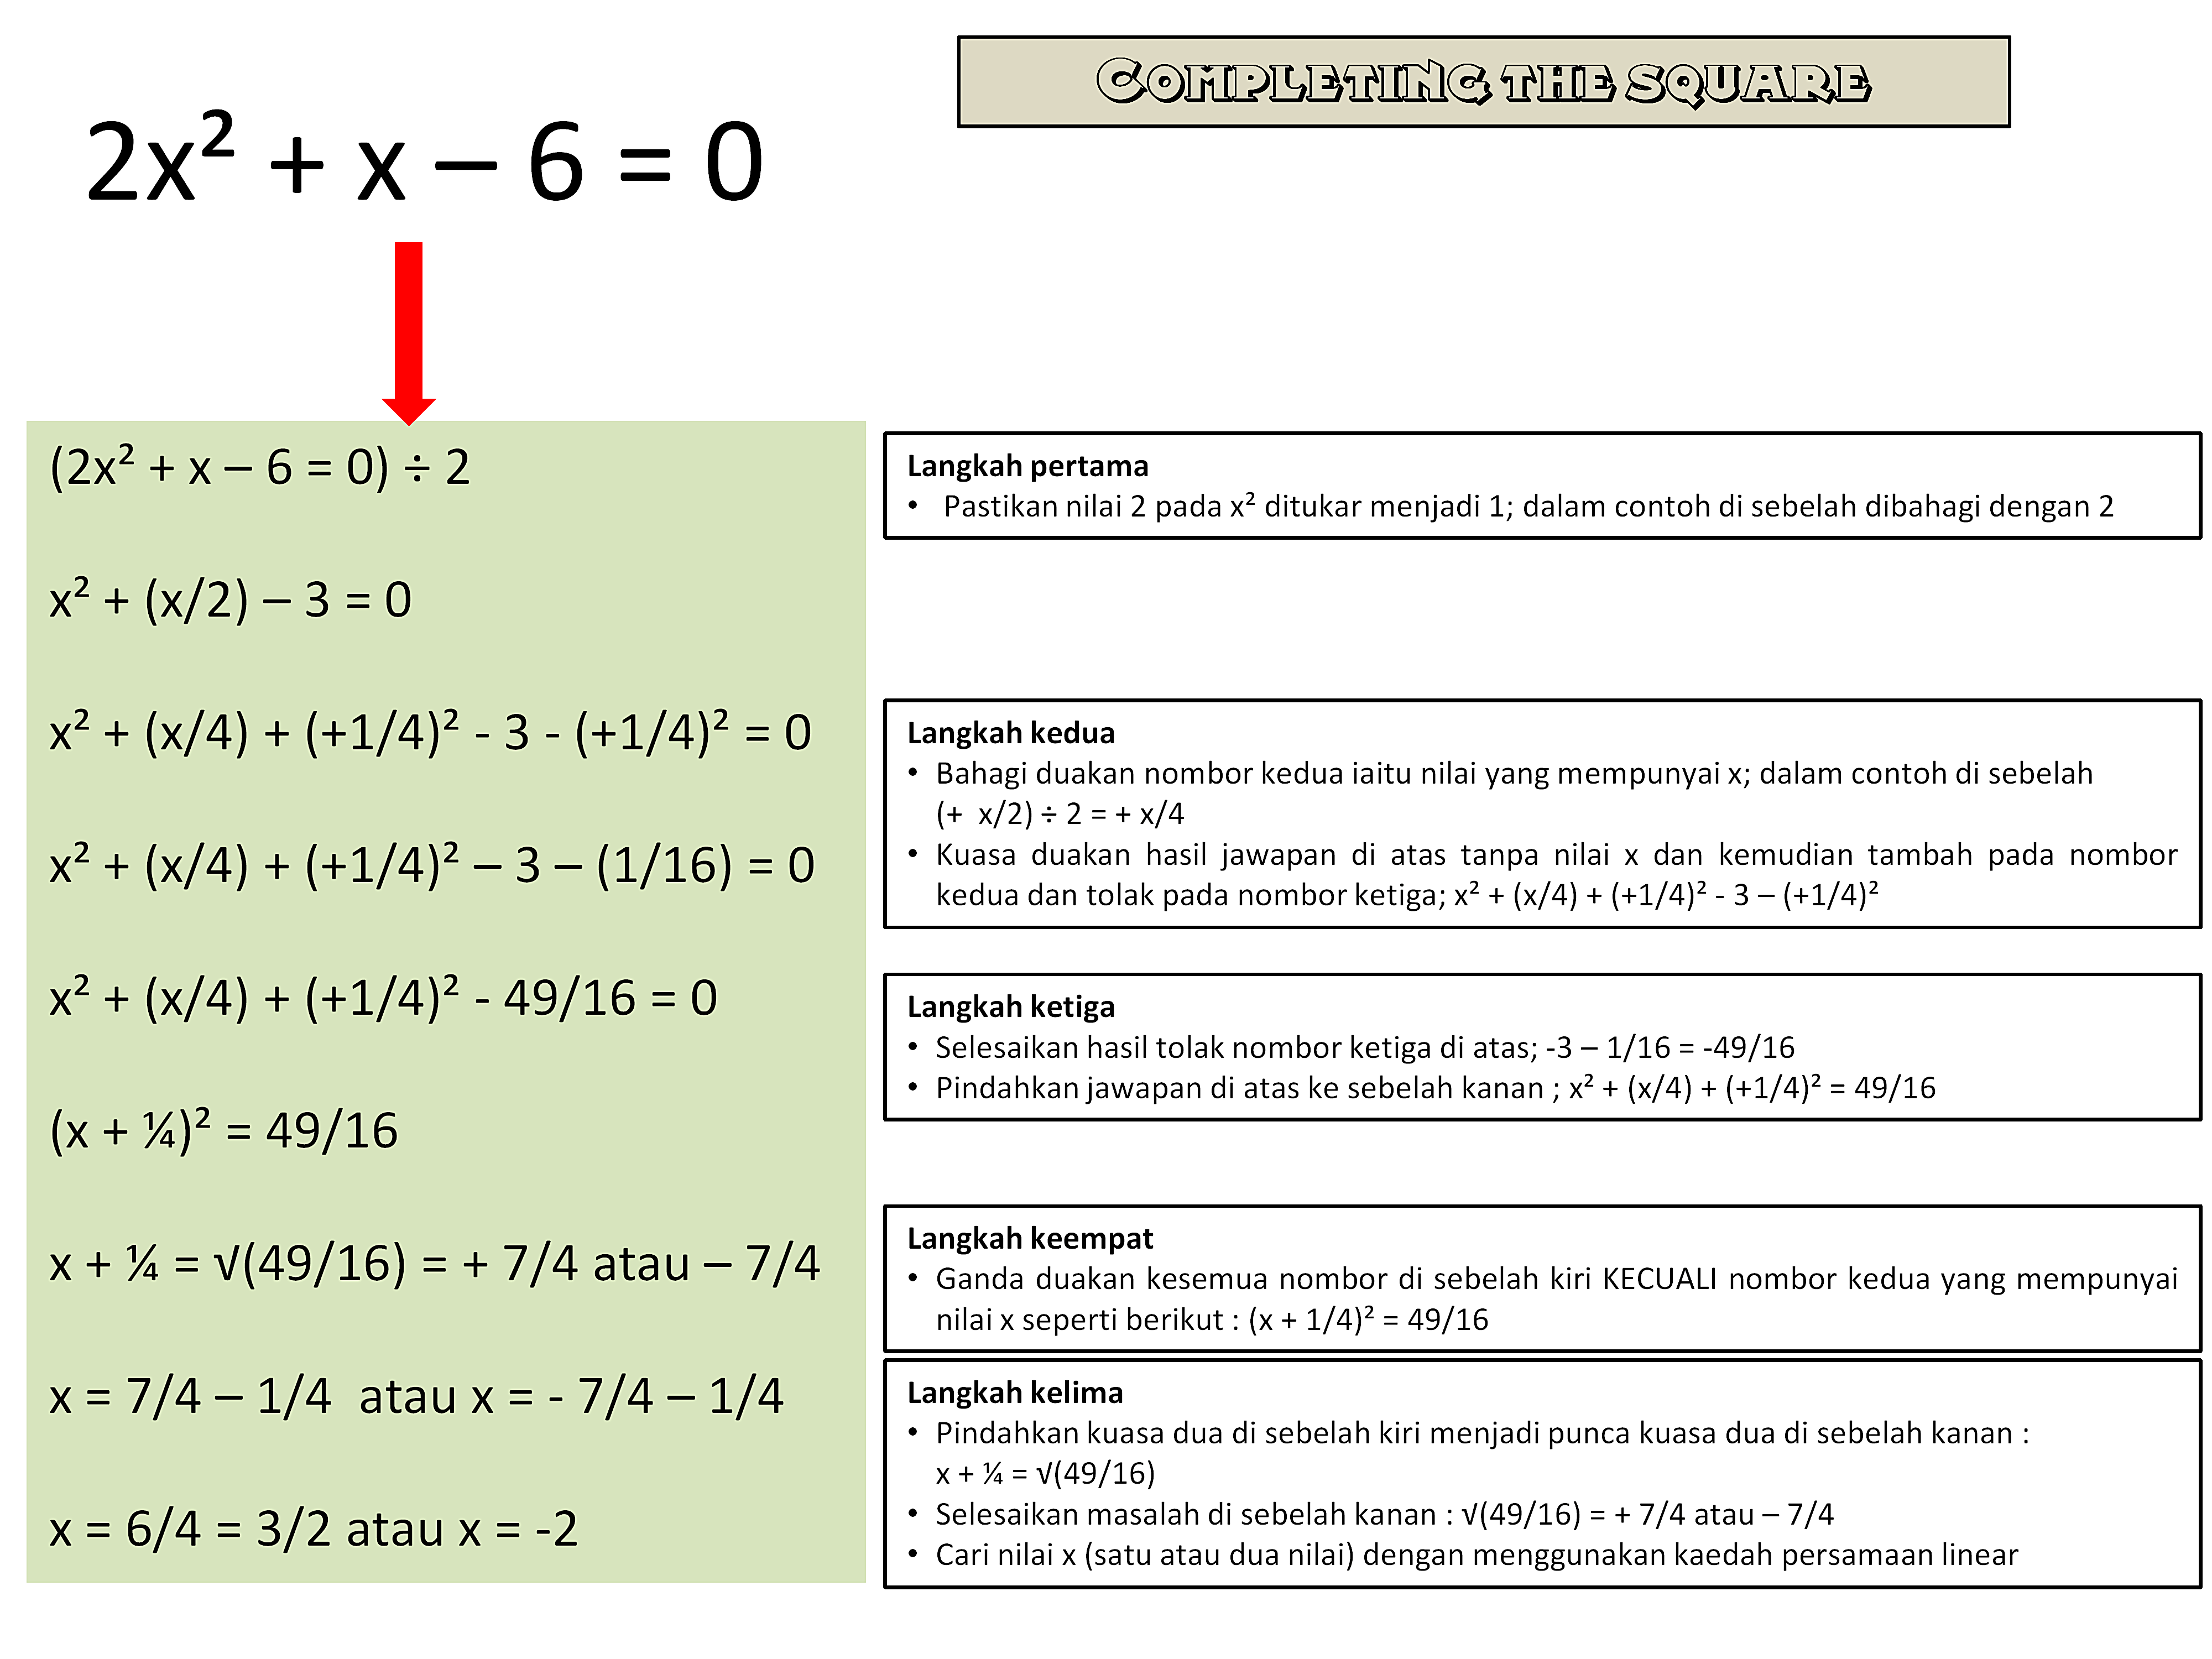 Form 4 Add Maths Finding The Roots Of Equation